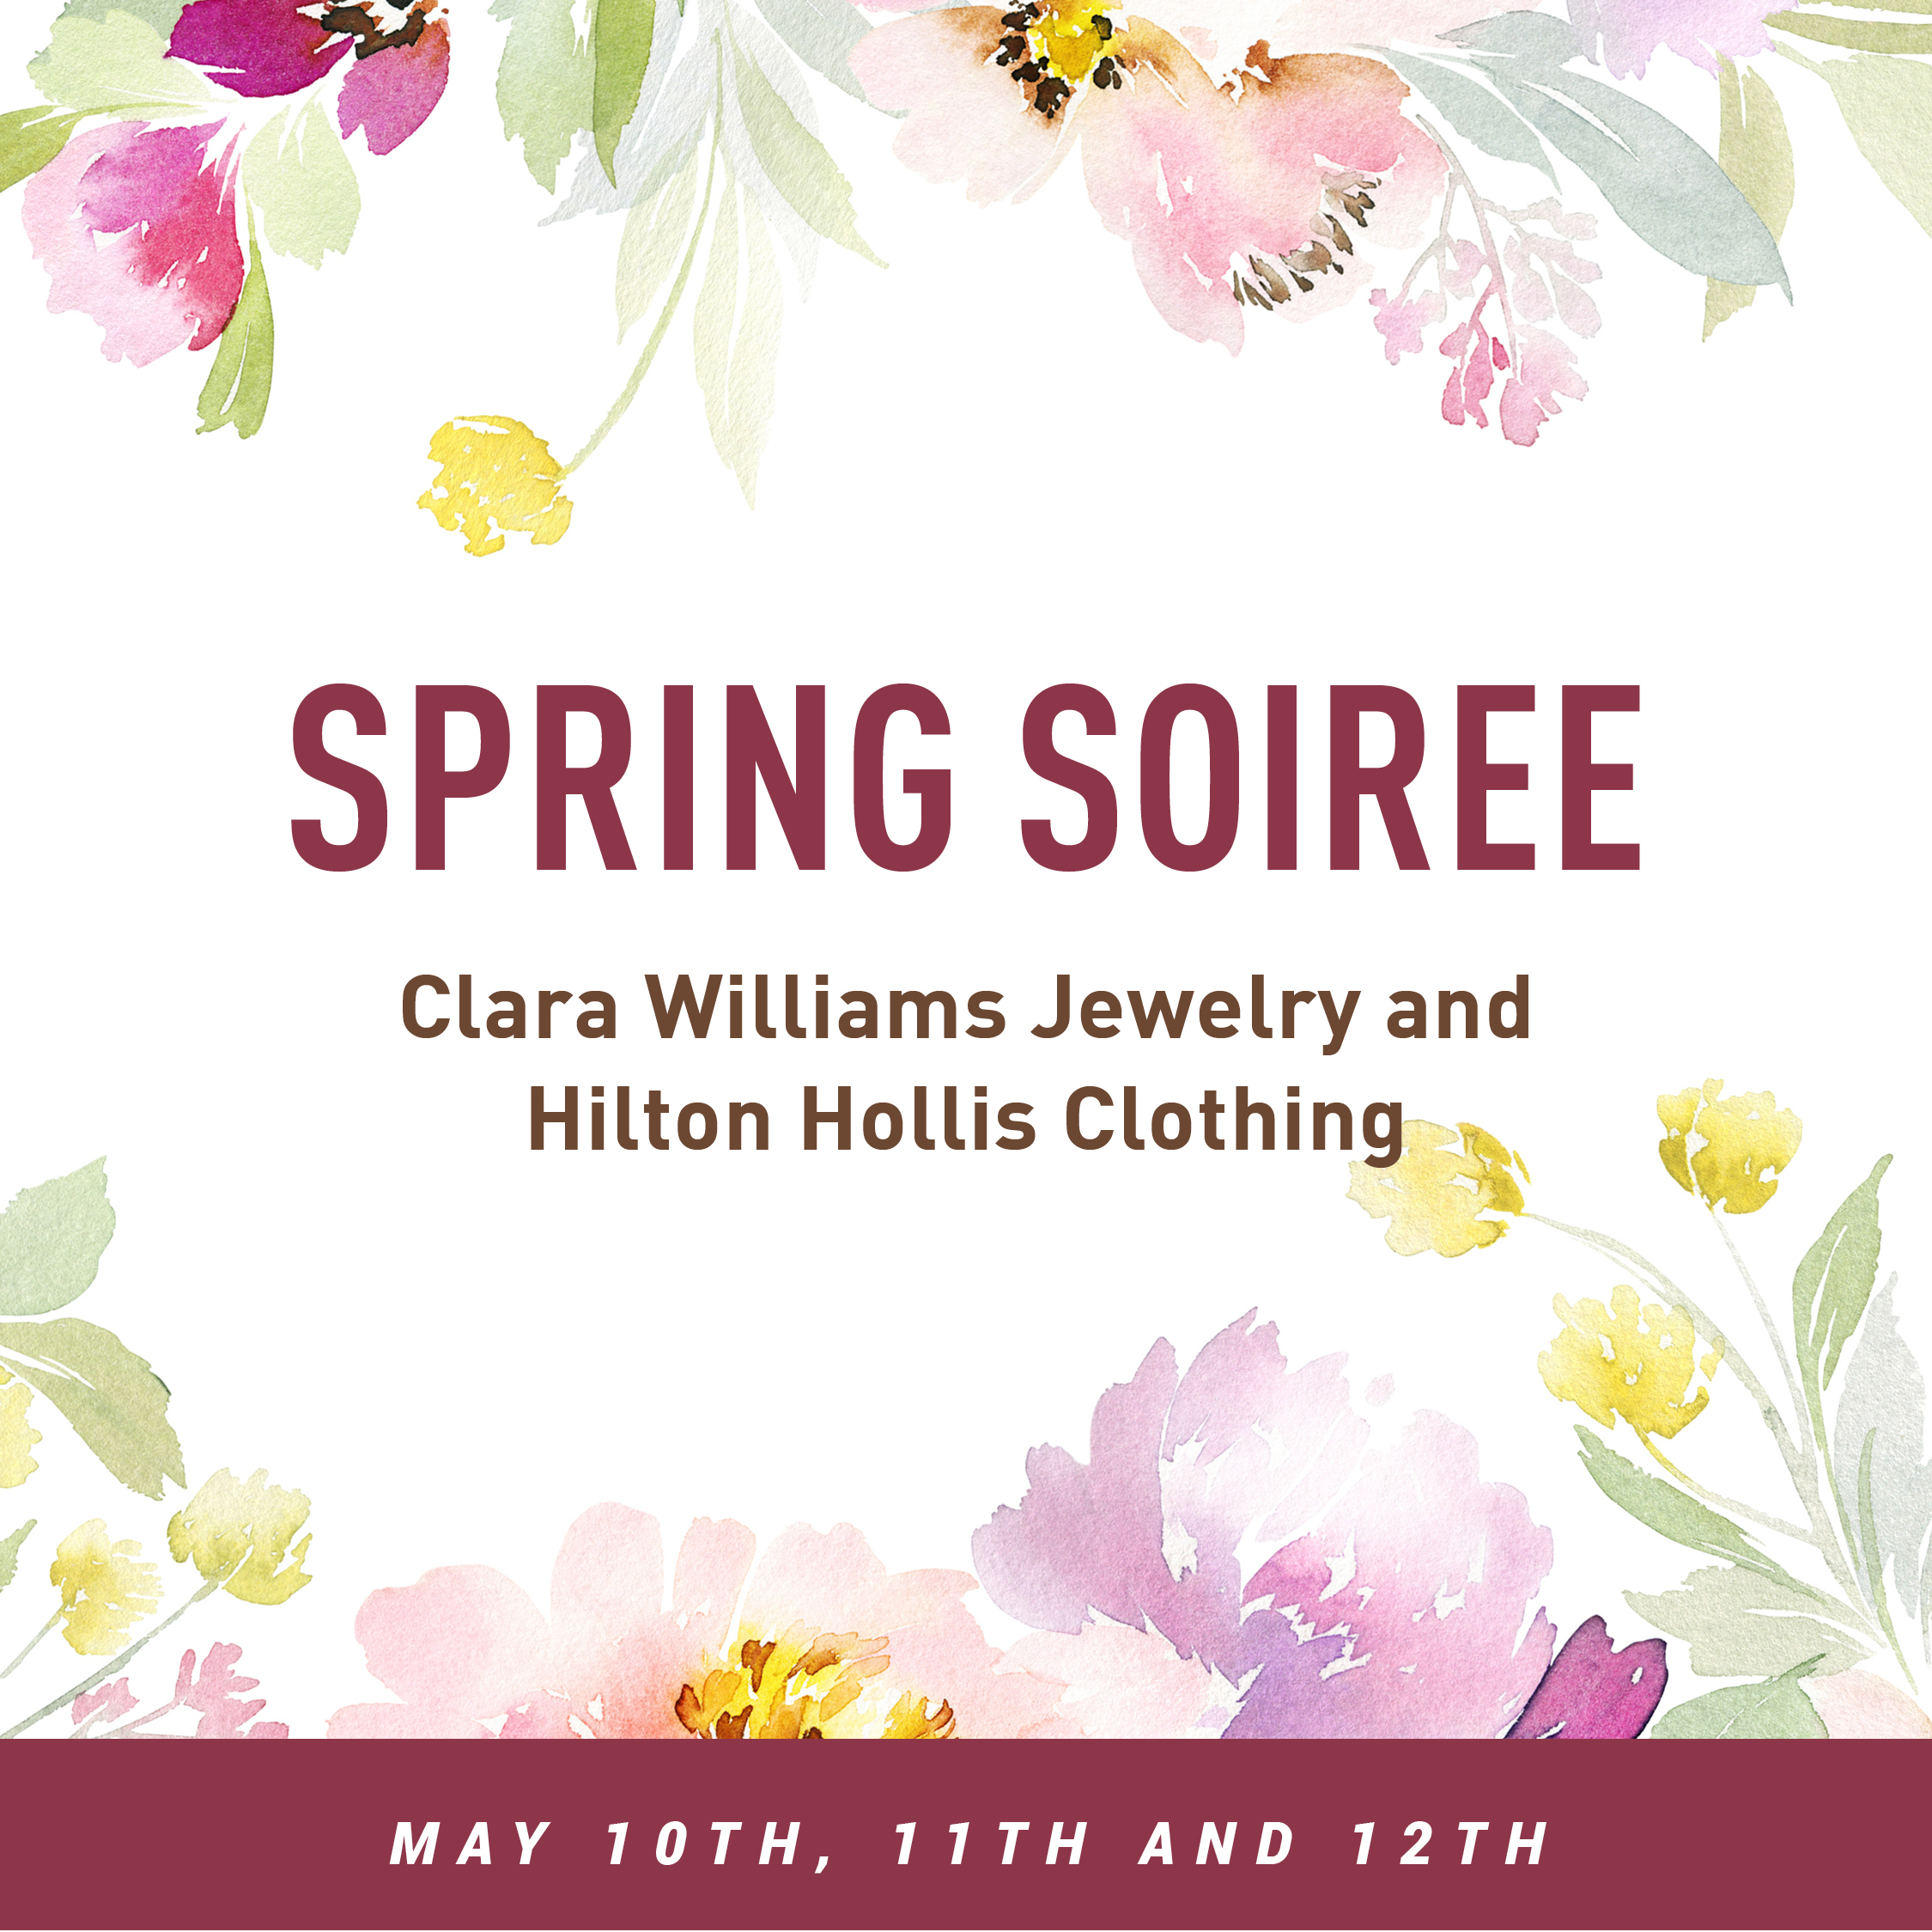 Join us for a Spring Soiree!